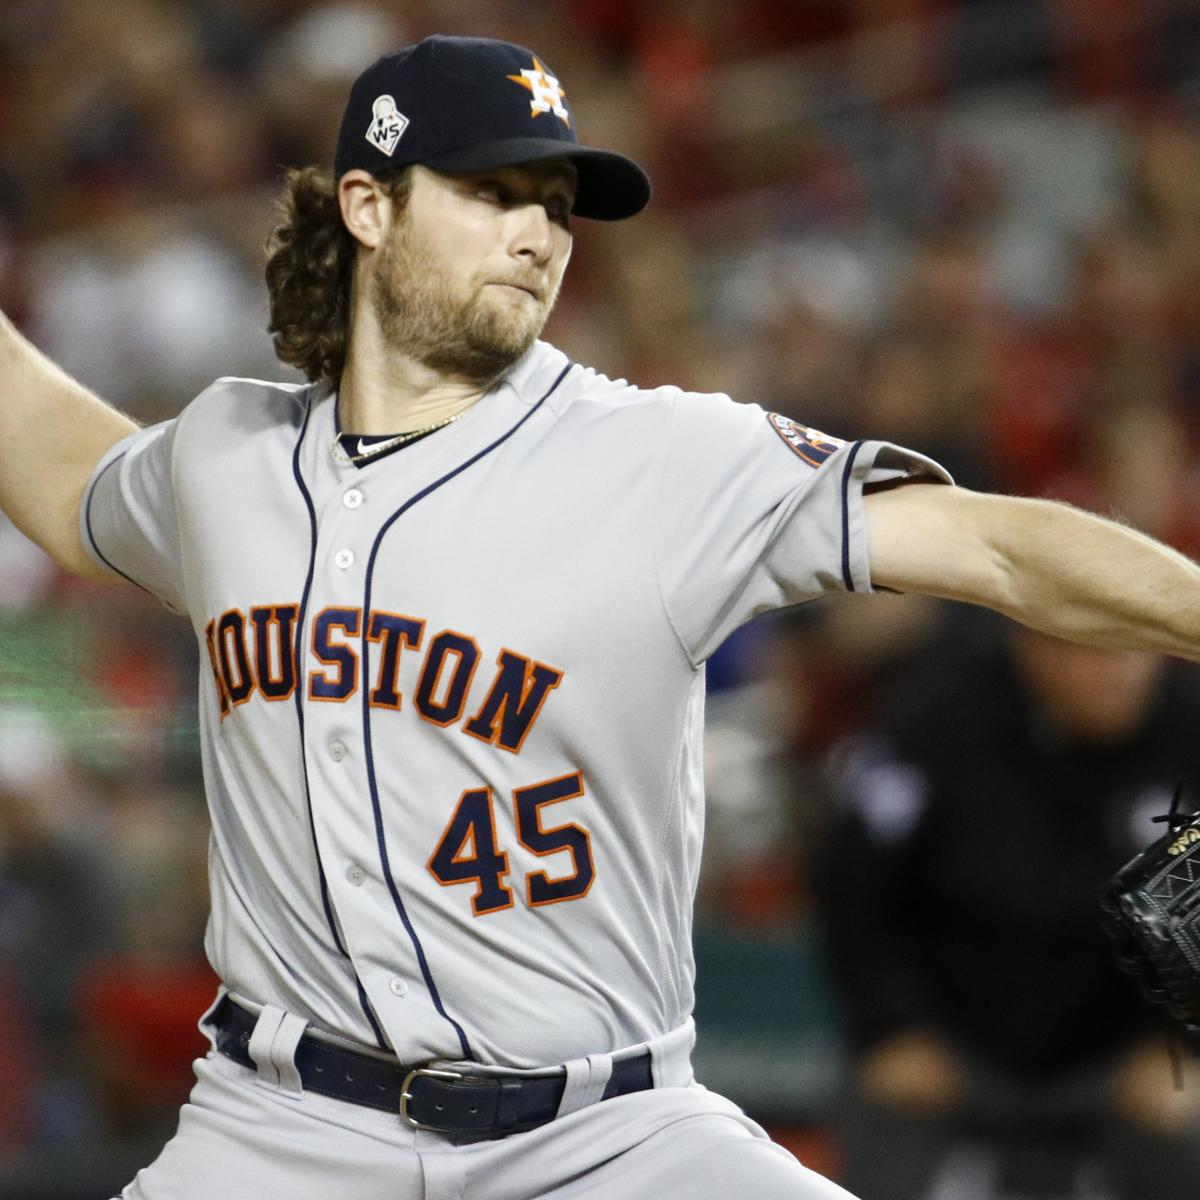 Yankees Rumors: Gerrit Cole's Contract Offer Exceeds Stephen Strasburg's $245M